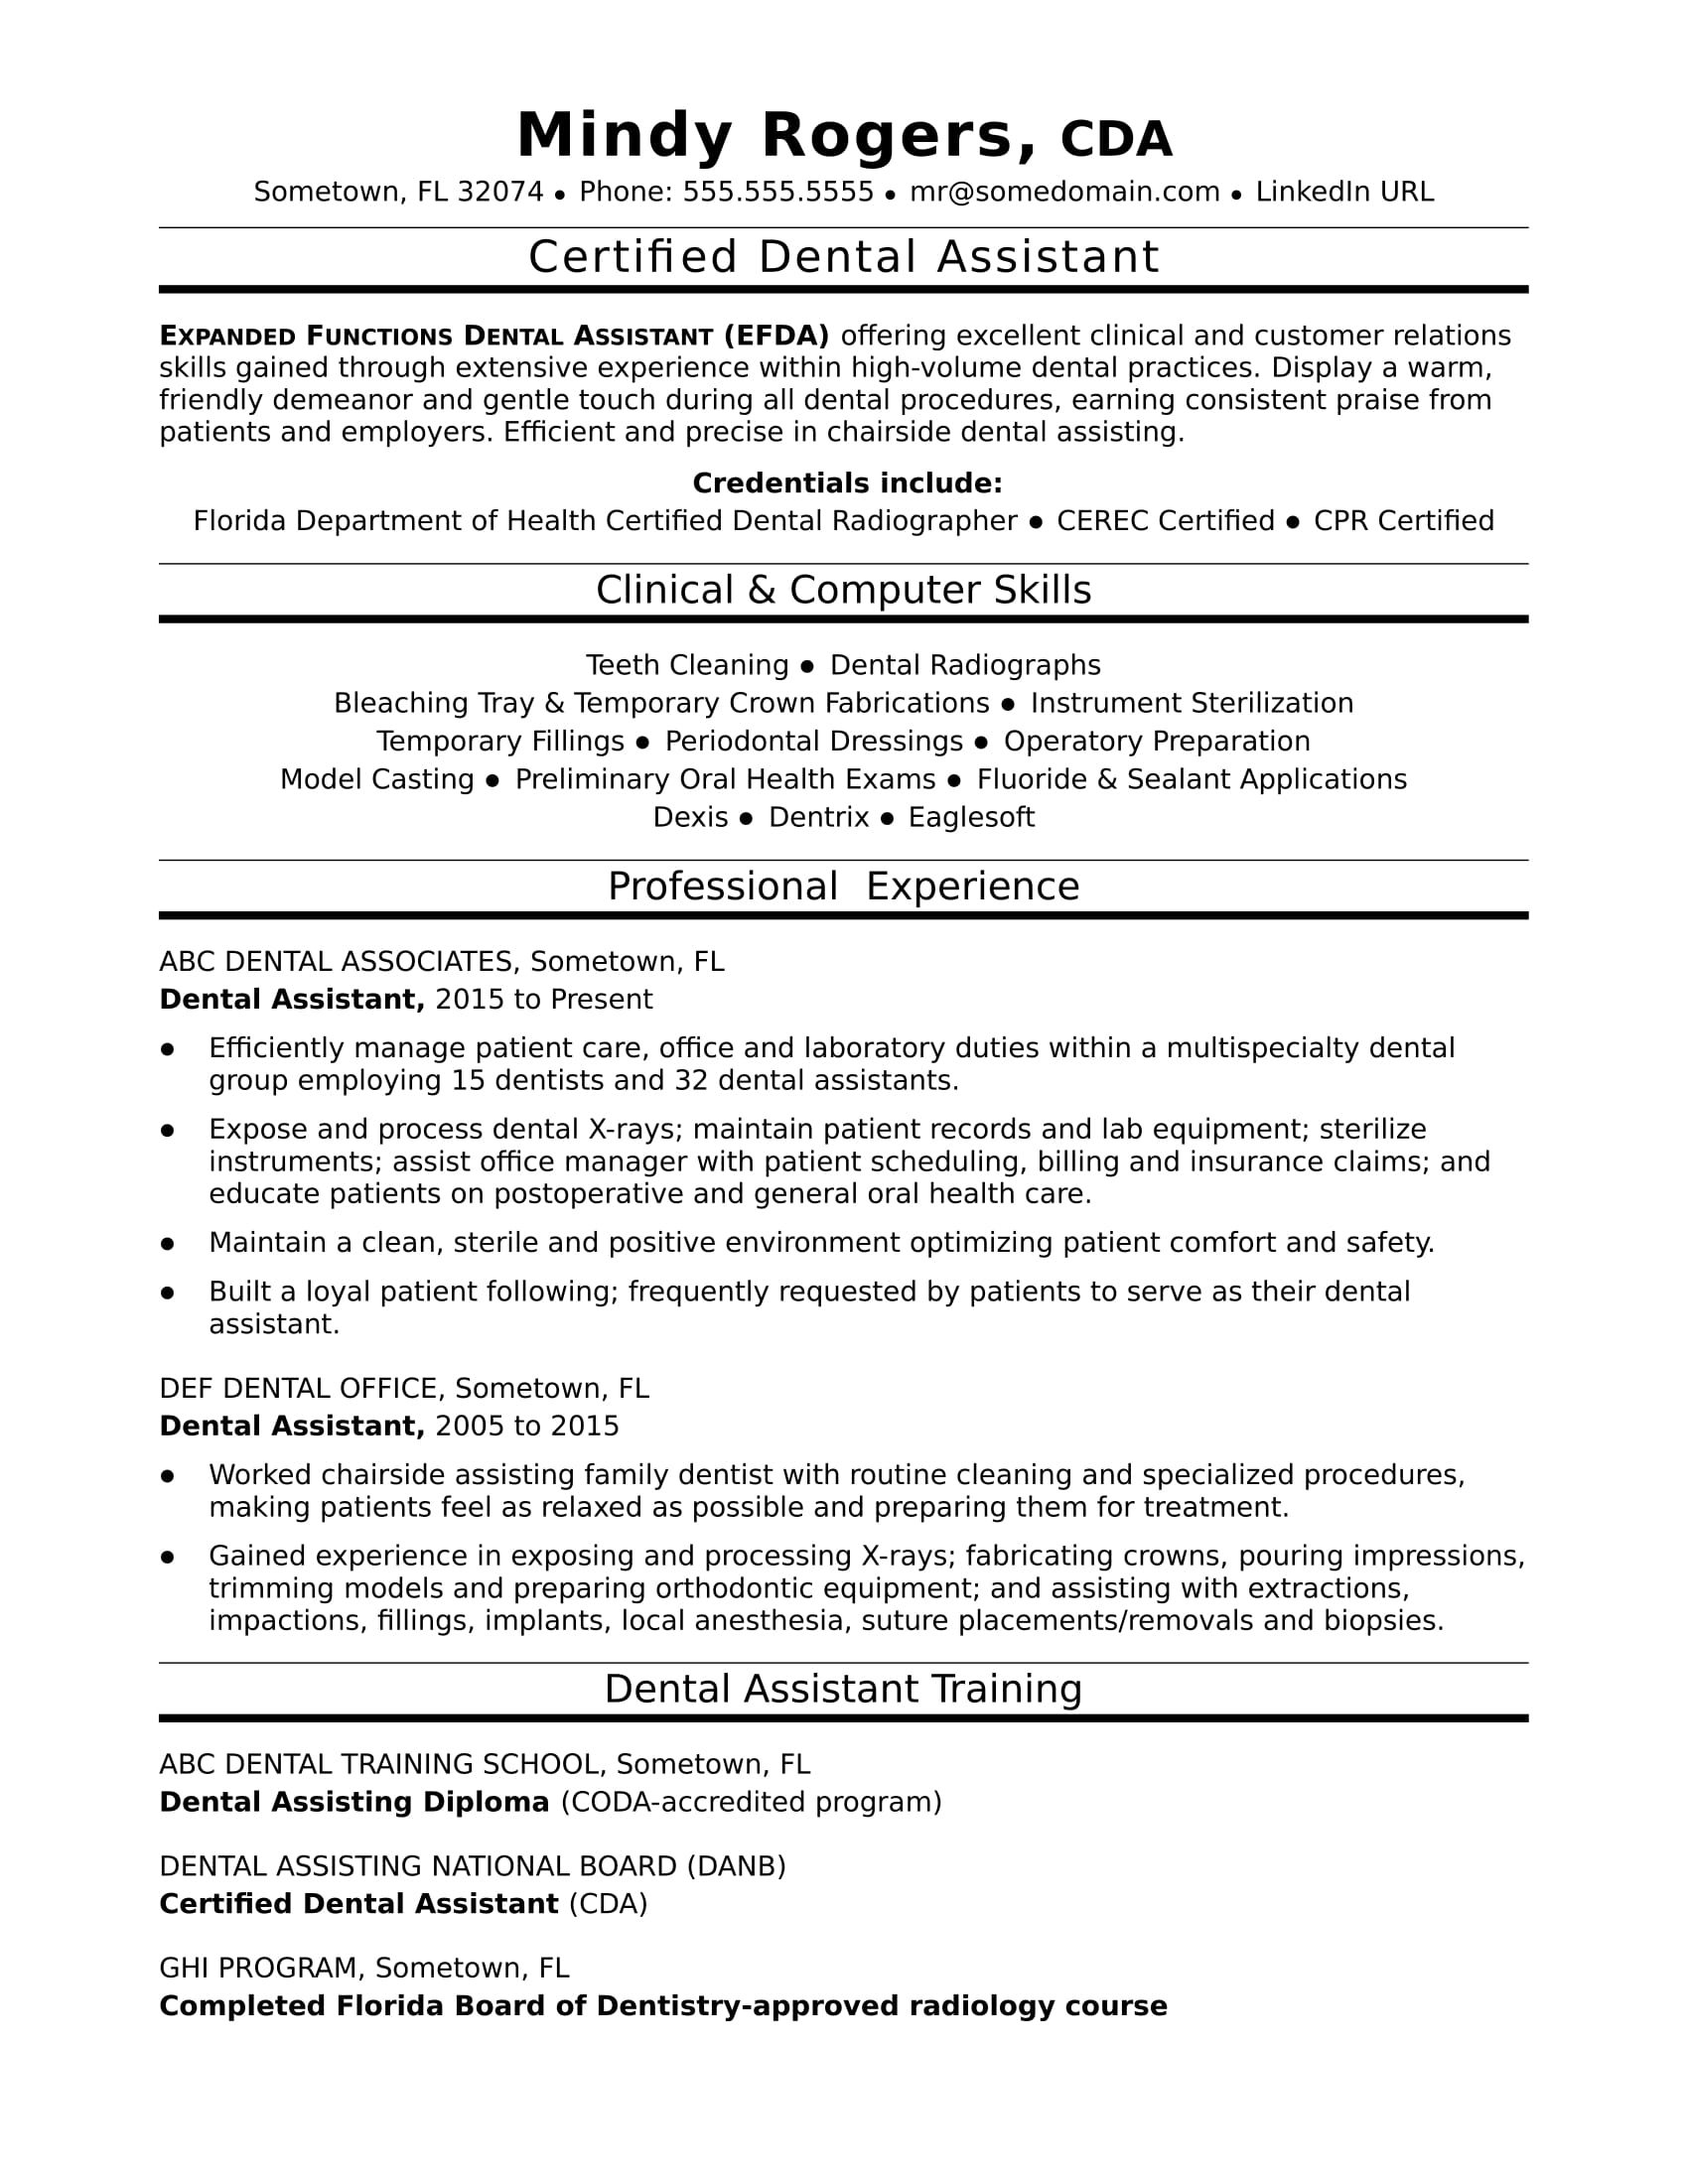 How To Fill Out Skills On A Resume Dental Assistant Resume Sample Monster